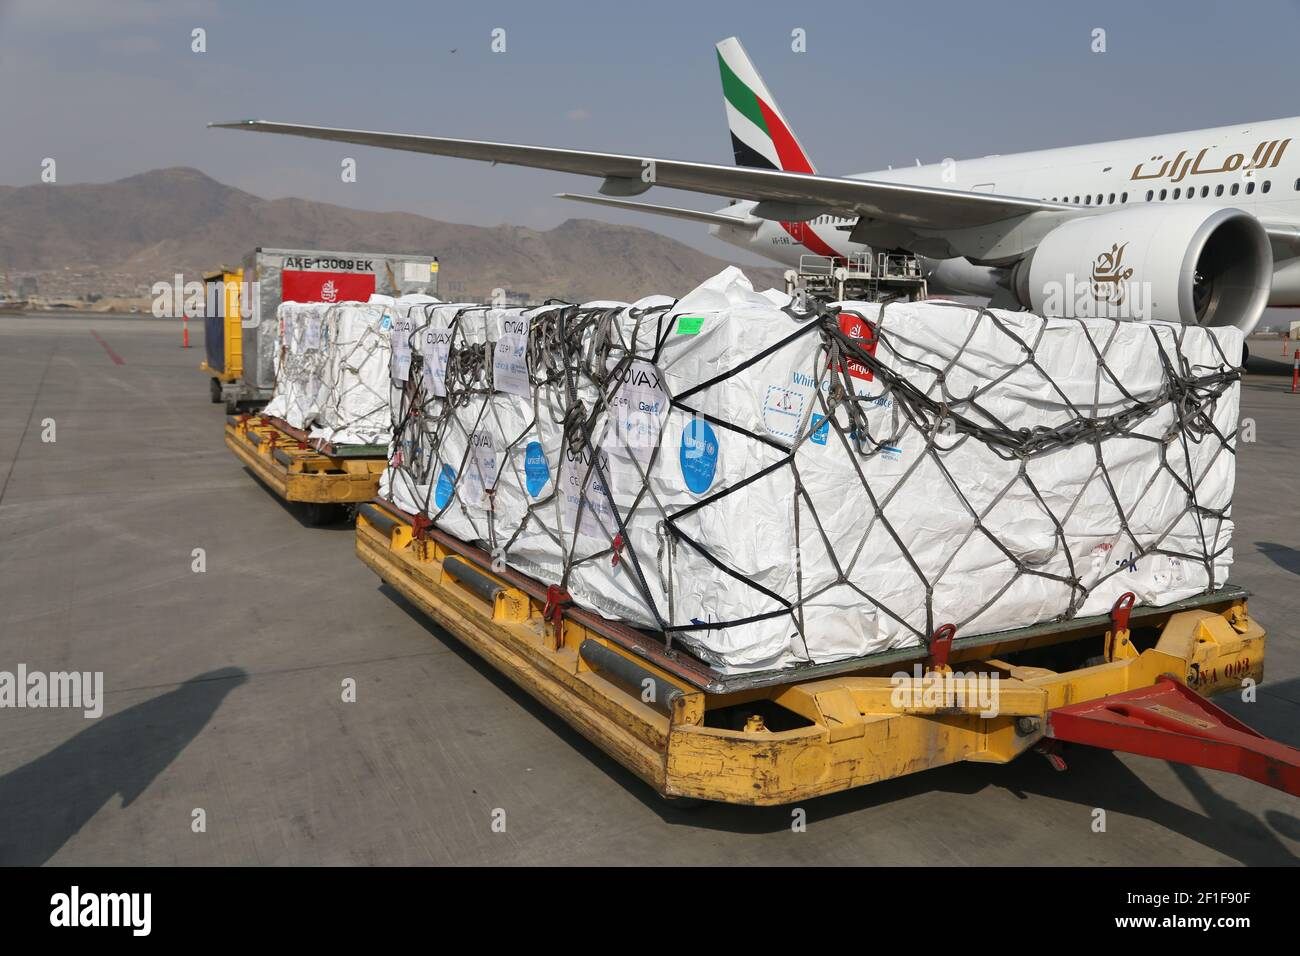 Kabul, Afghanistan. 8th Mar, 2021. Photo taken on March 8, 2021 shows COVID-19 vaccines from COVAX, an international program devised to help low and middle-income countries to have more access to COVID-19 vaccines, arriving at Hamid Karzai International Airport in Kabul, capital of Afghanistan. Credit: Sayed Mominzadah/Xinhua/Alamy Live News Stock Photo